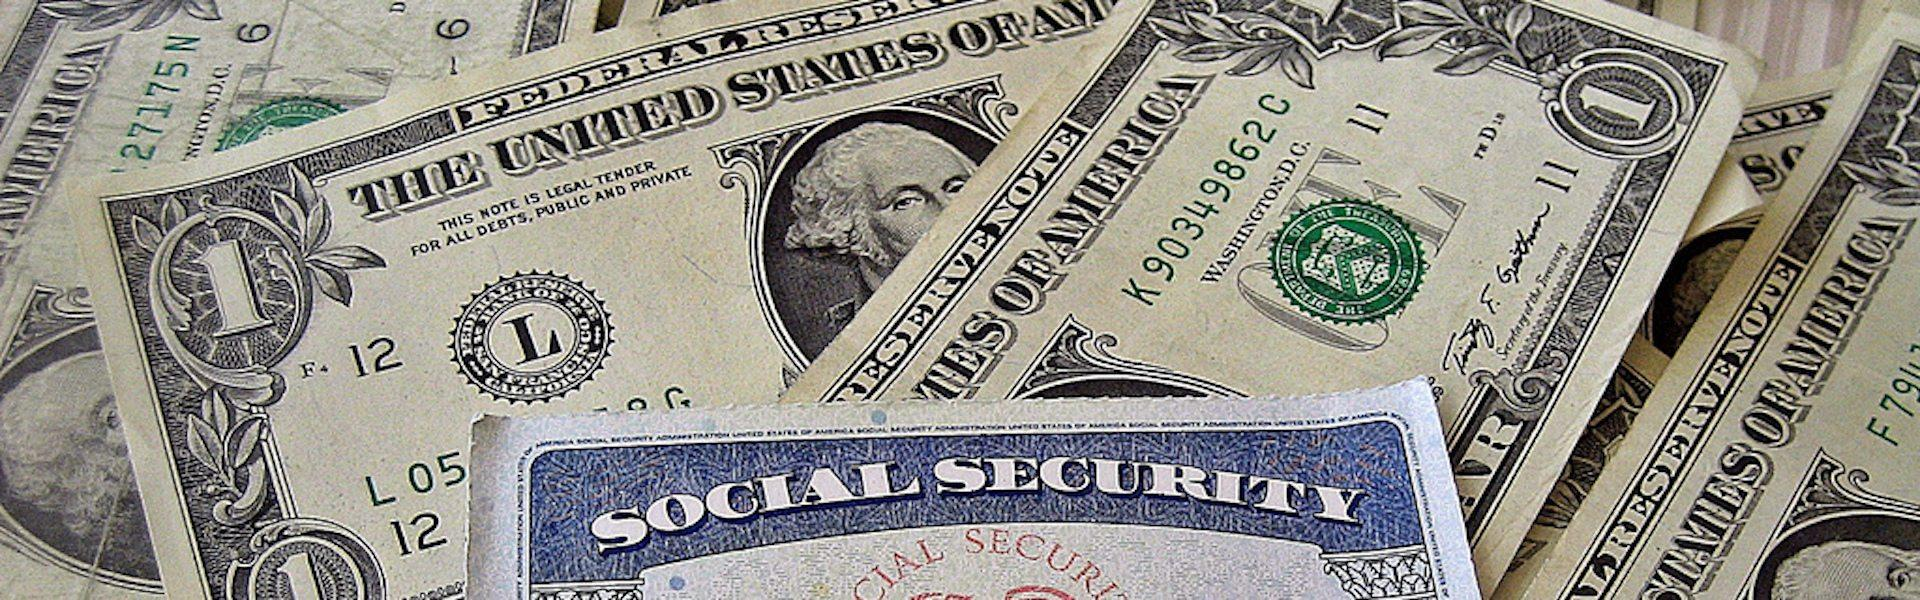 Identity theft social security